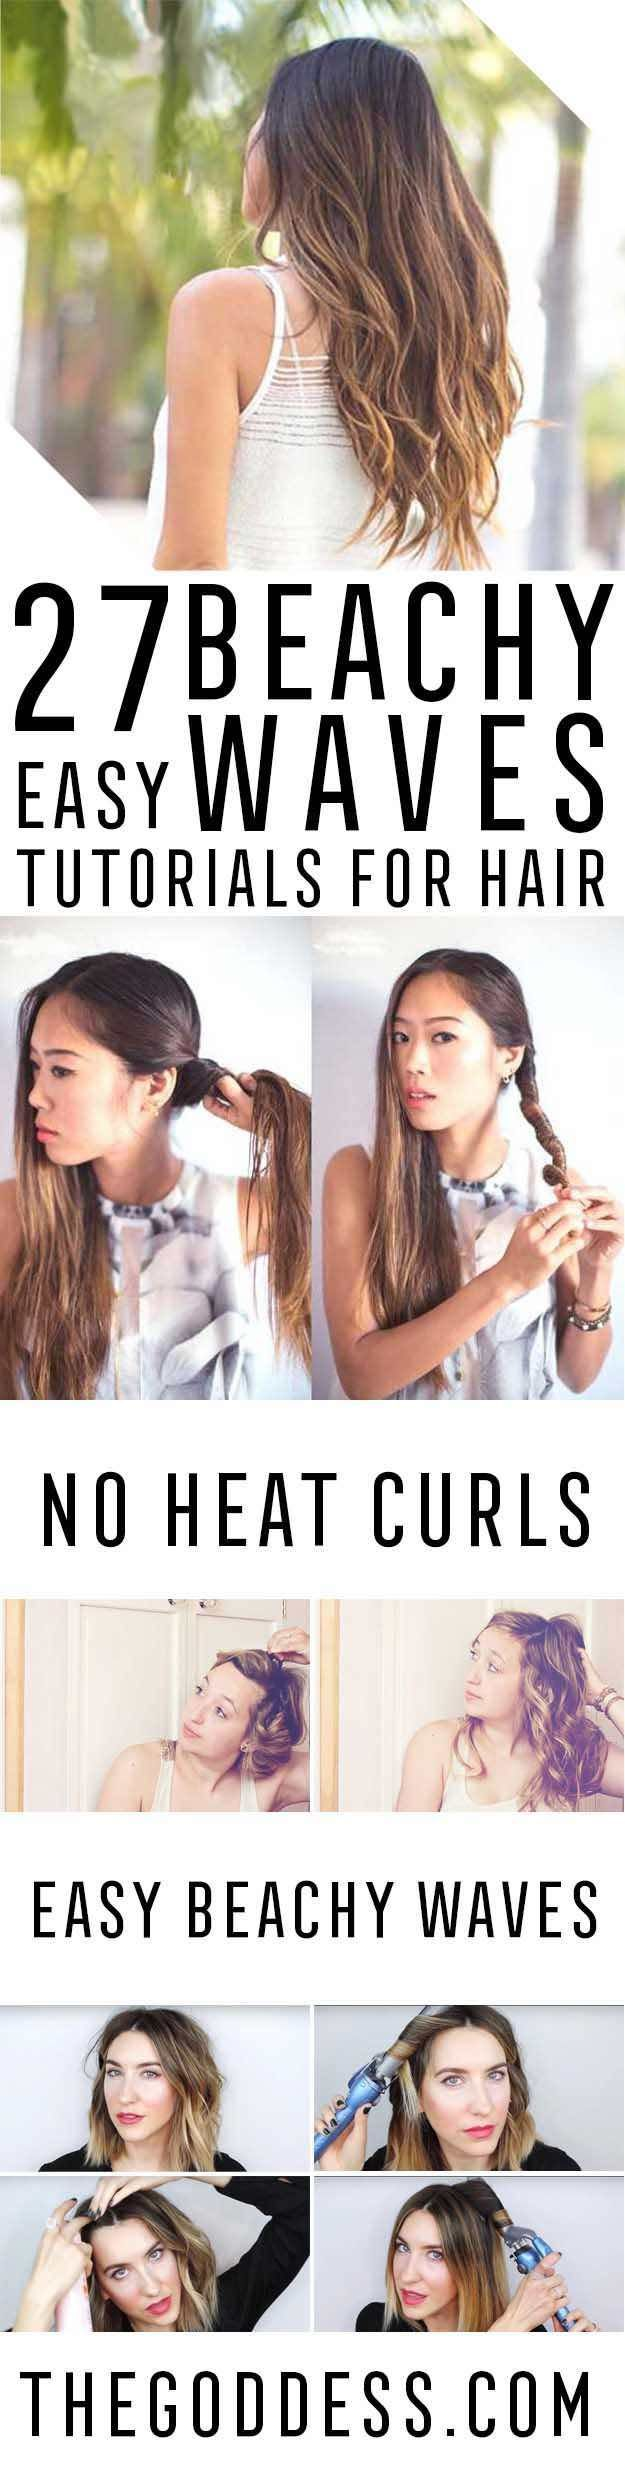 101 best Hair images on Pinterest | Hairstyles, Hair and 2 braids